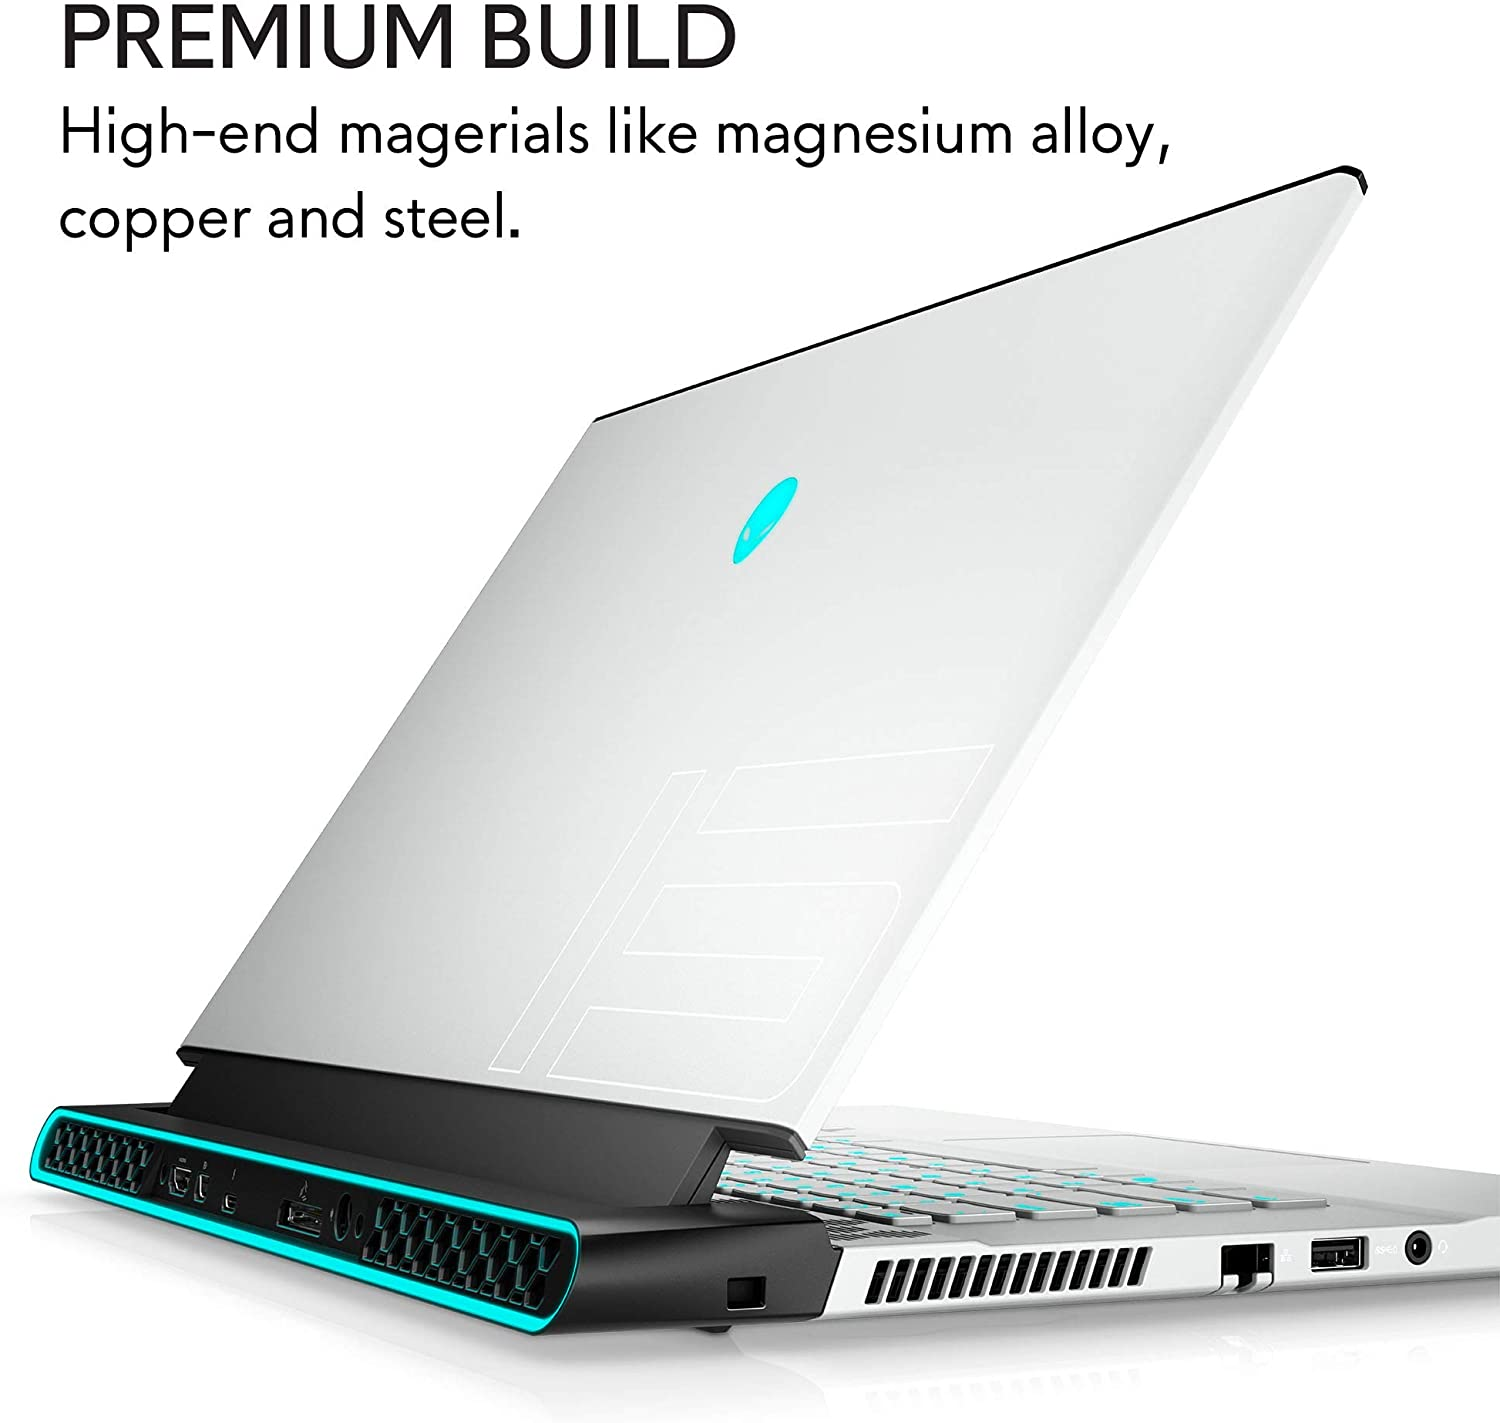 New Alienware m15 Gaming Laptop